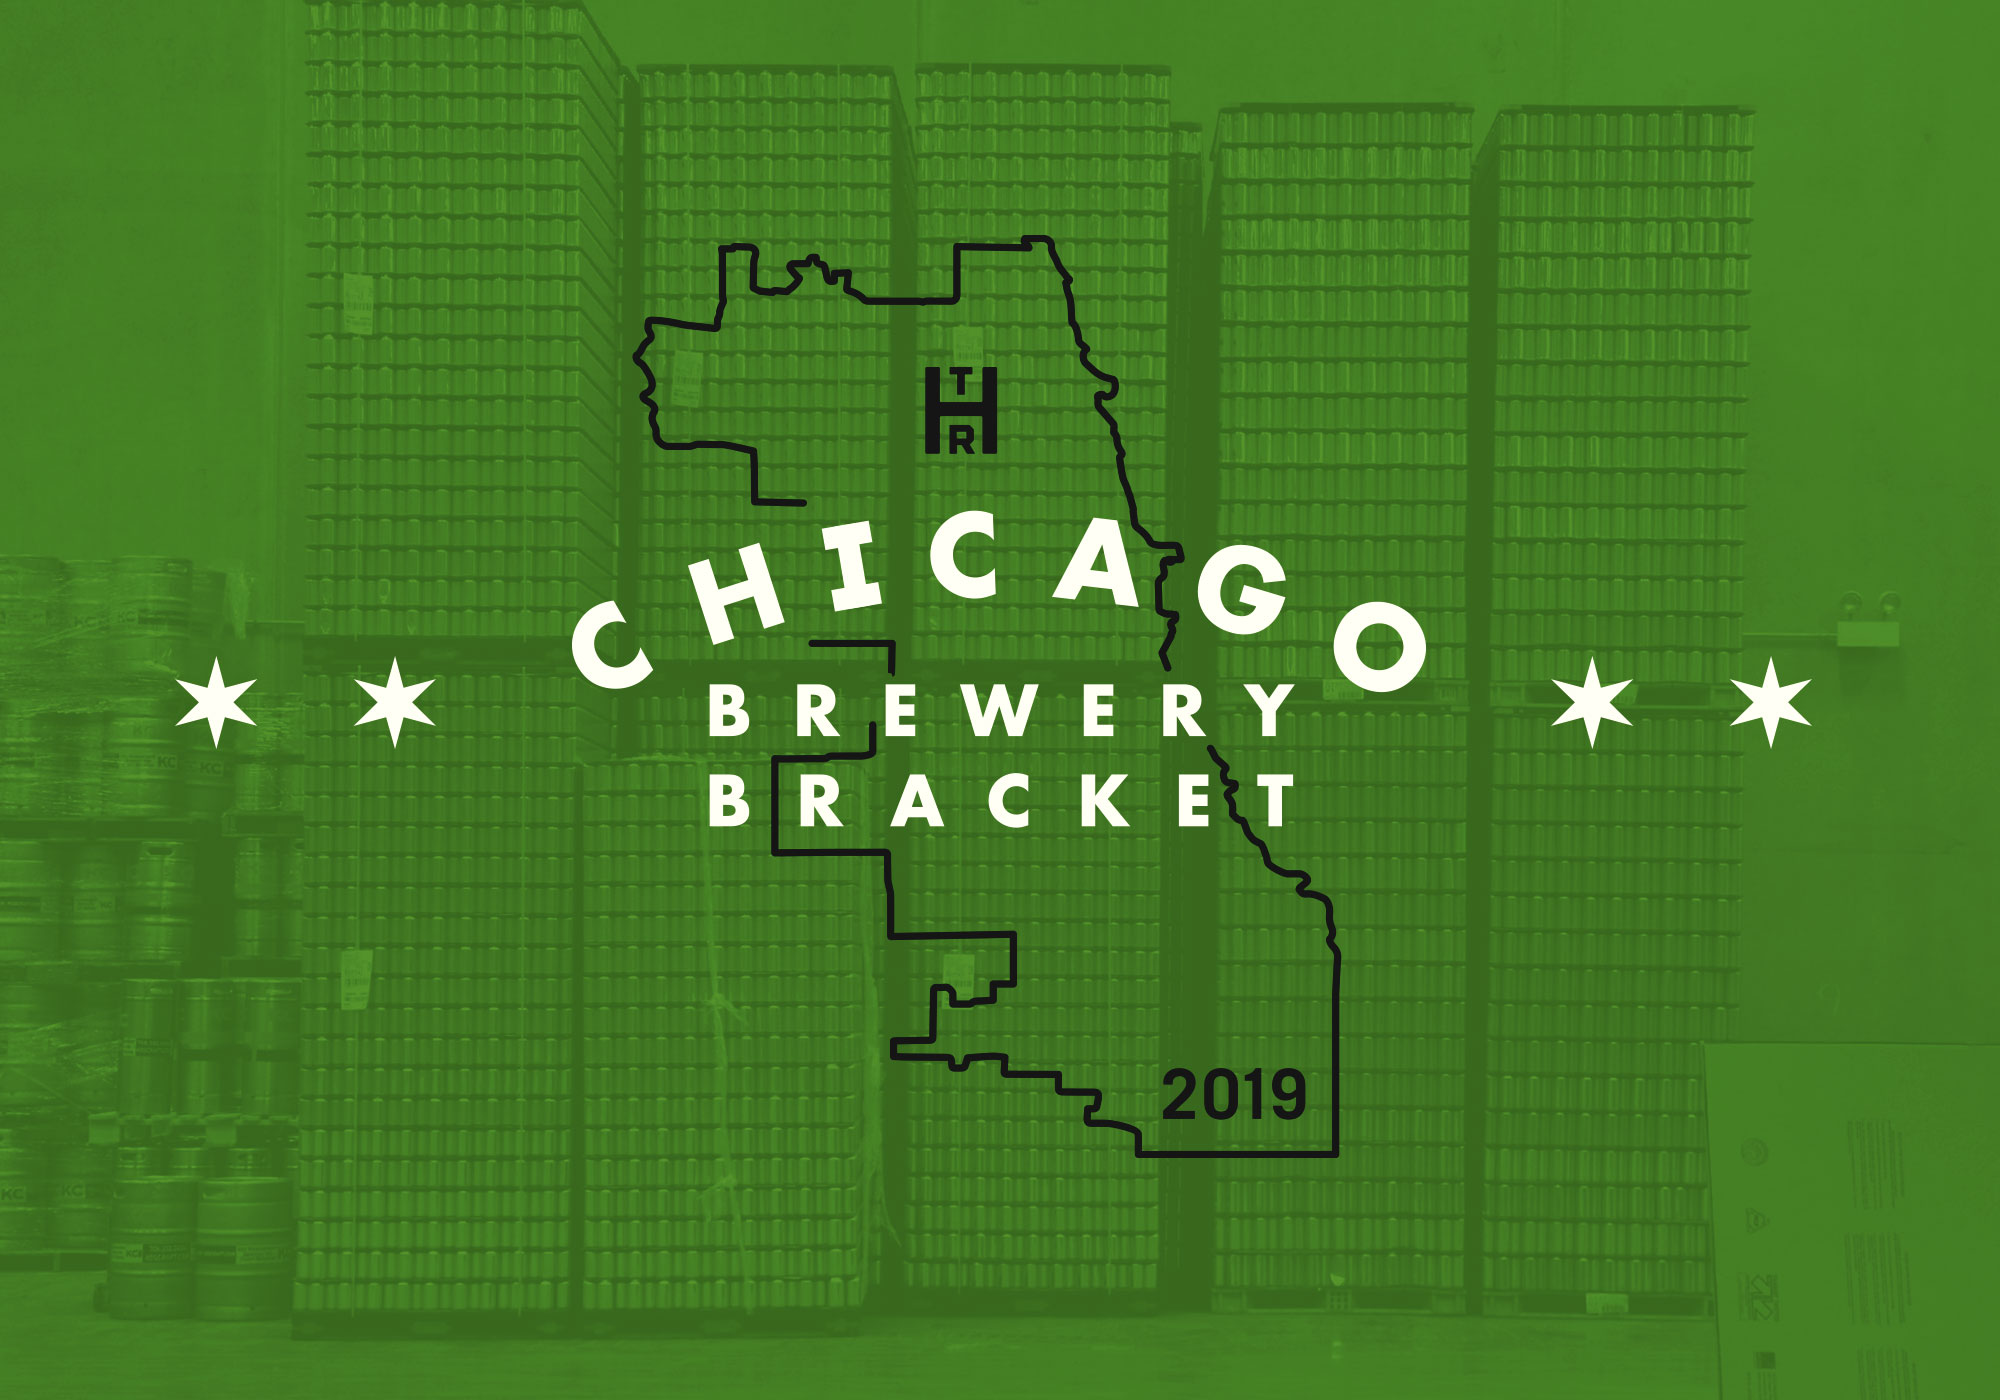 ChicagoBreweryBracket_2019-0.jpg